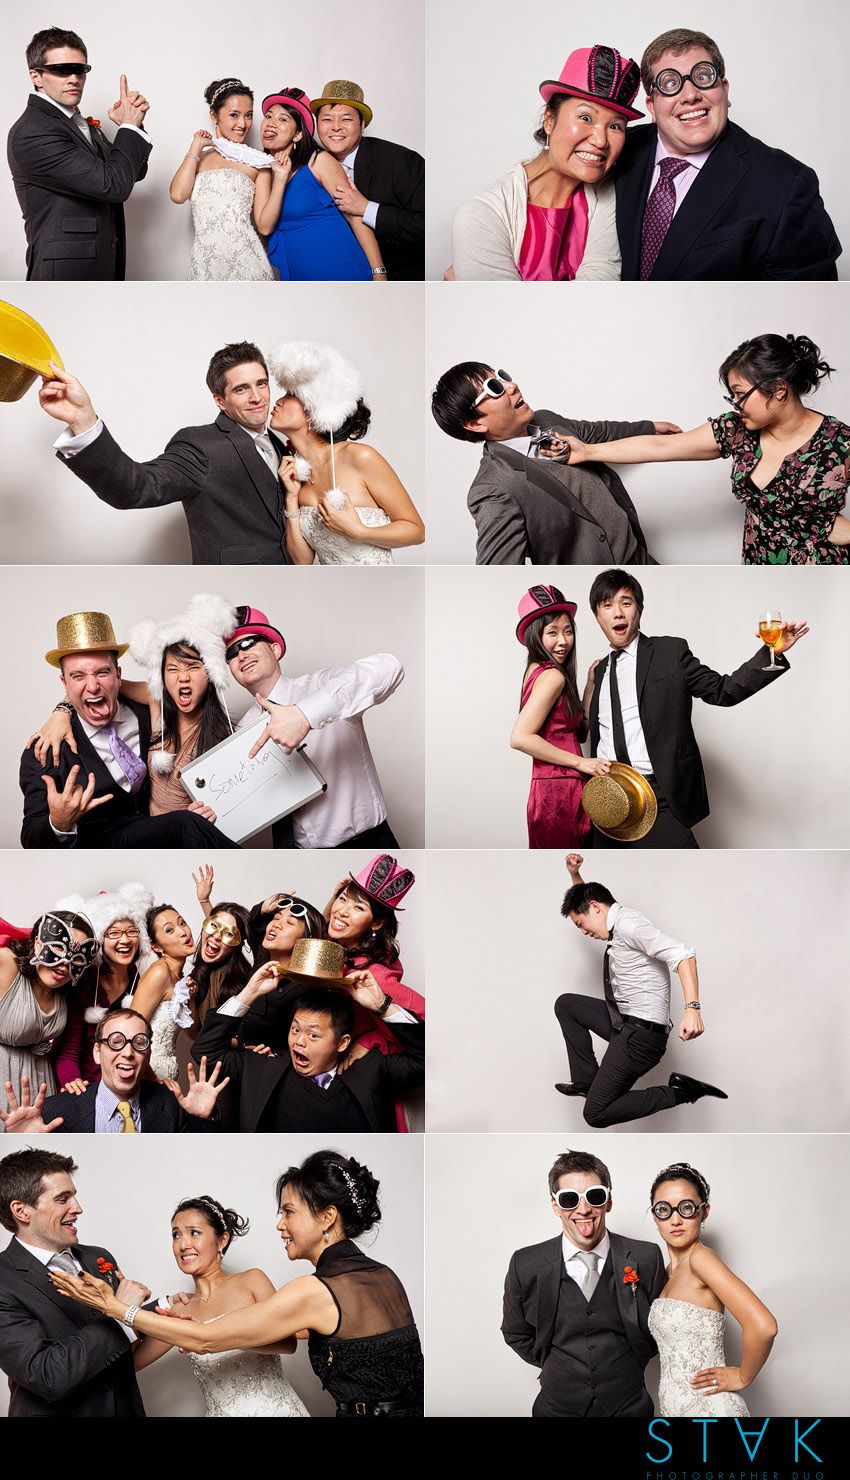 Our STAK-Booth highlights from Victoria + Jonathan's #Wedding! www.getstak.com